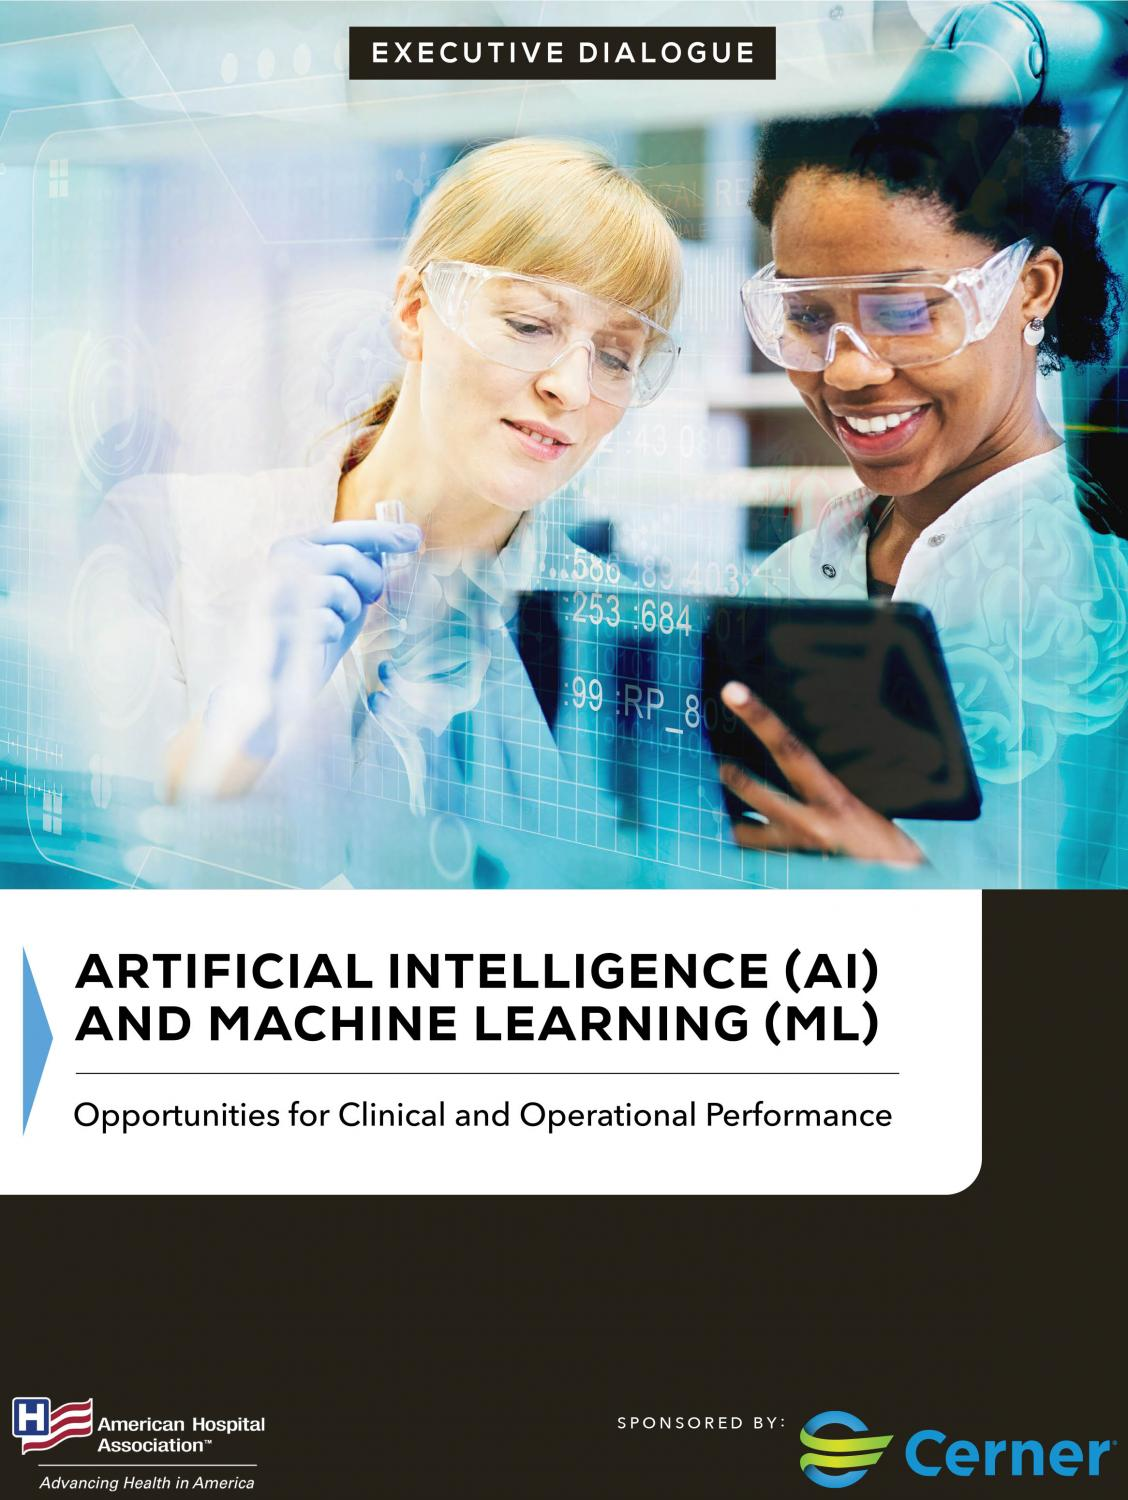 Executive Dialogue: Artificial Intelligence and Machine Learning | Opportunities for Clinical and Operational Performance cover